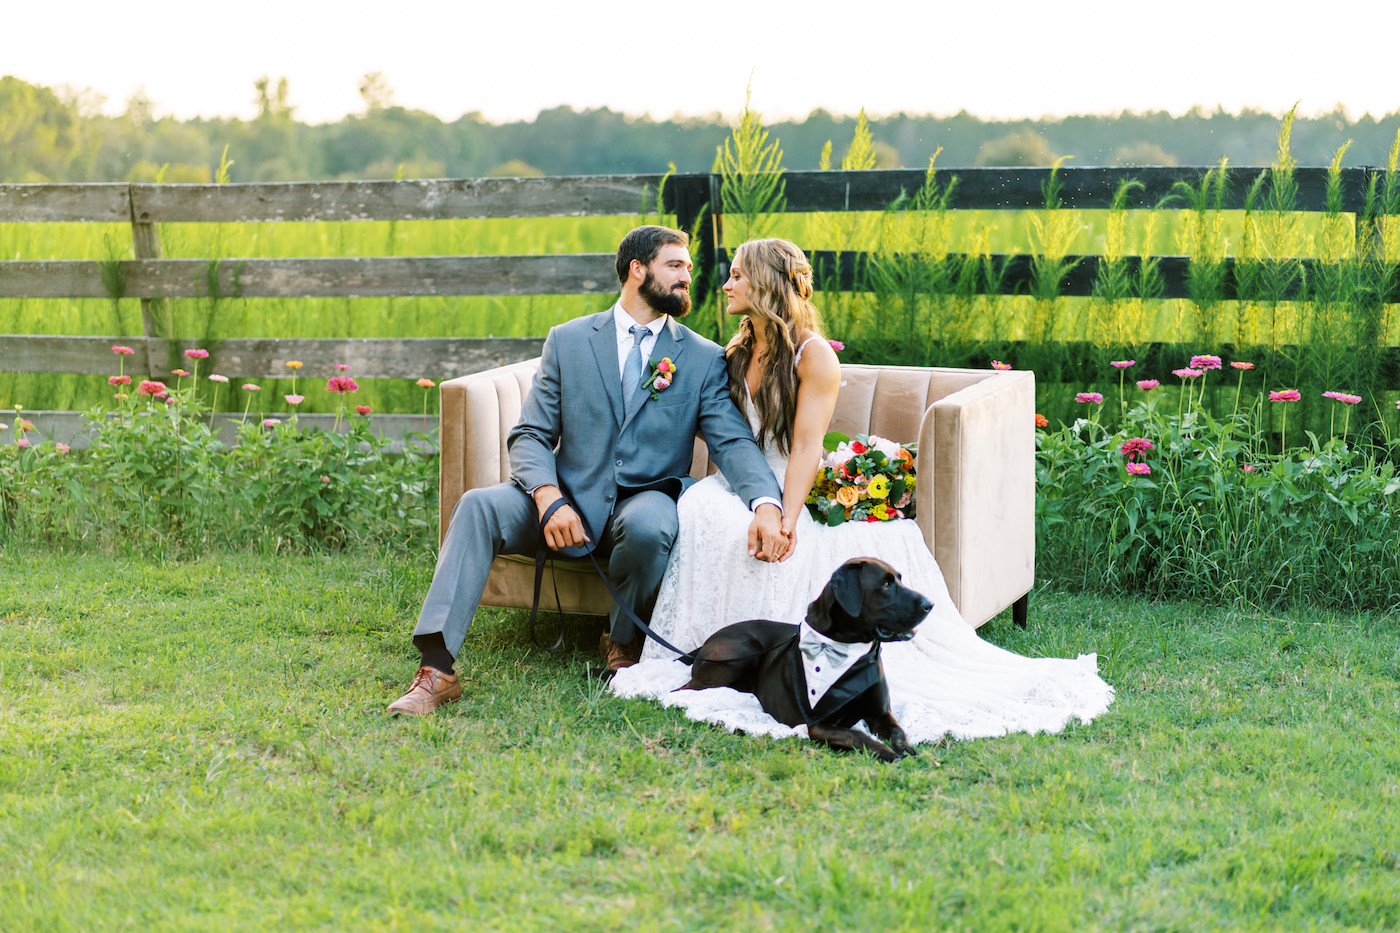 Bright Colorful Florida Citrus Wedding Inspiration | Bridal Bouquet with Pink Orange and Yellow Roses | Groom in Grey Suit with Grey Neck Tie | Wedding Dog of Honor with Bow Tie Collar | Outdoor Bride and Groom Portrait with Love Seat